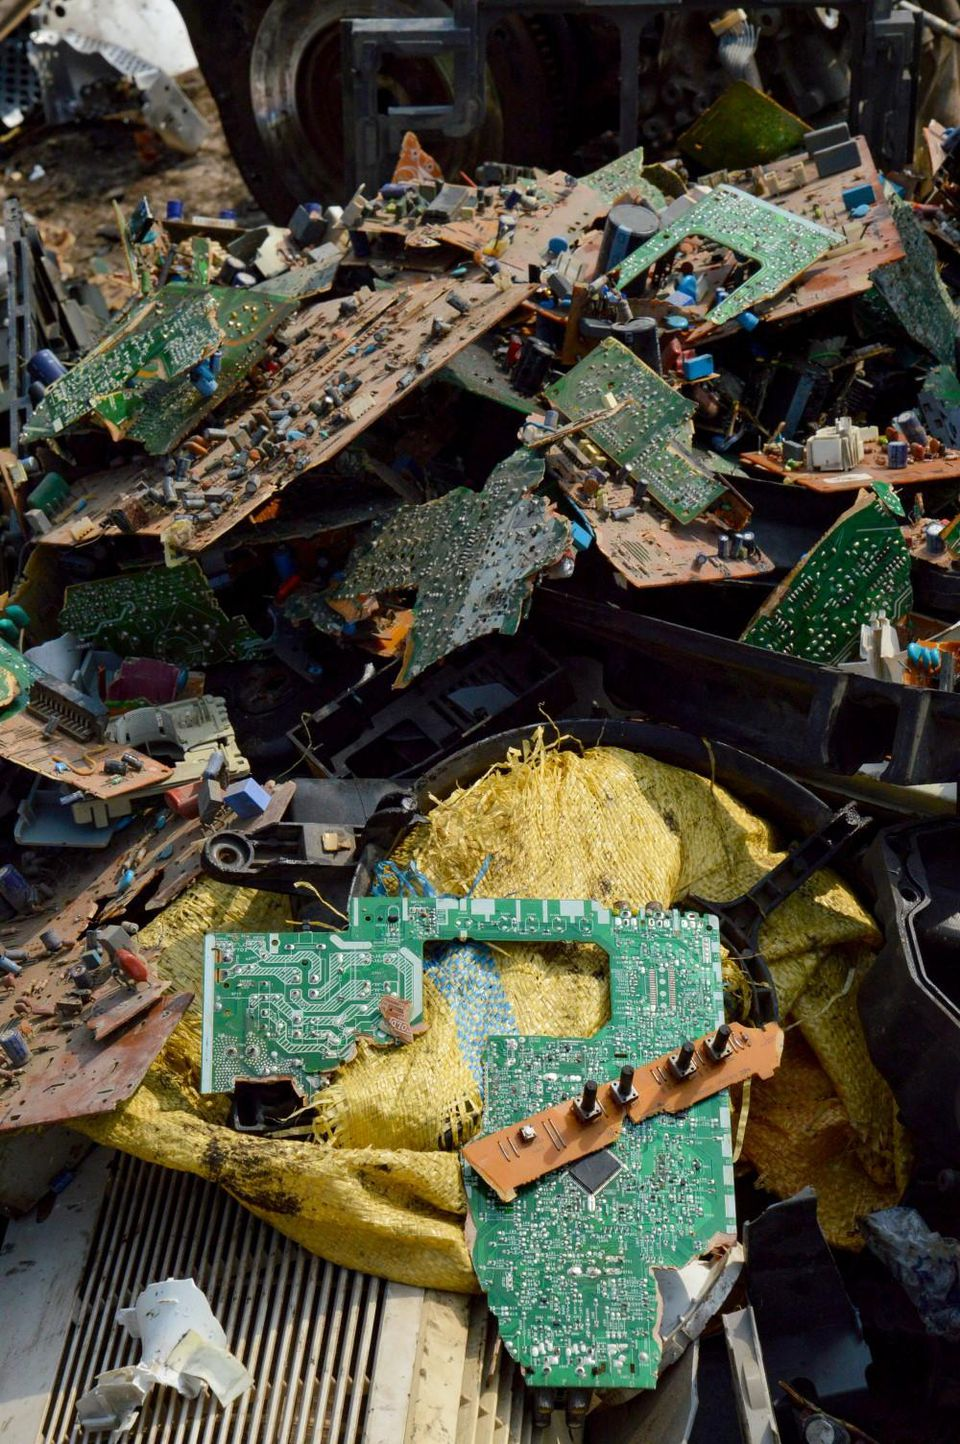 Electronic waste items in Agbogbloshie Martin Holzknecht, Arnika